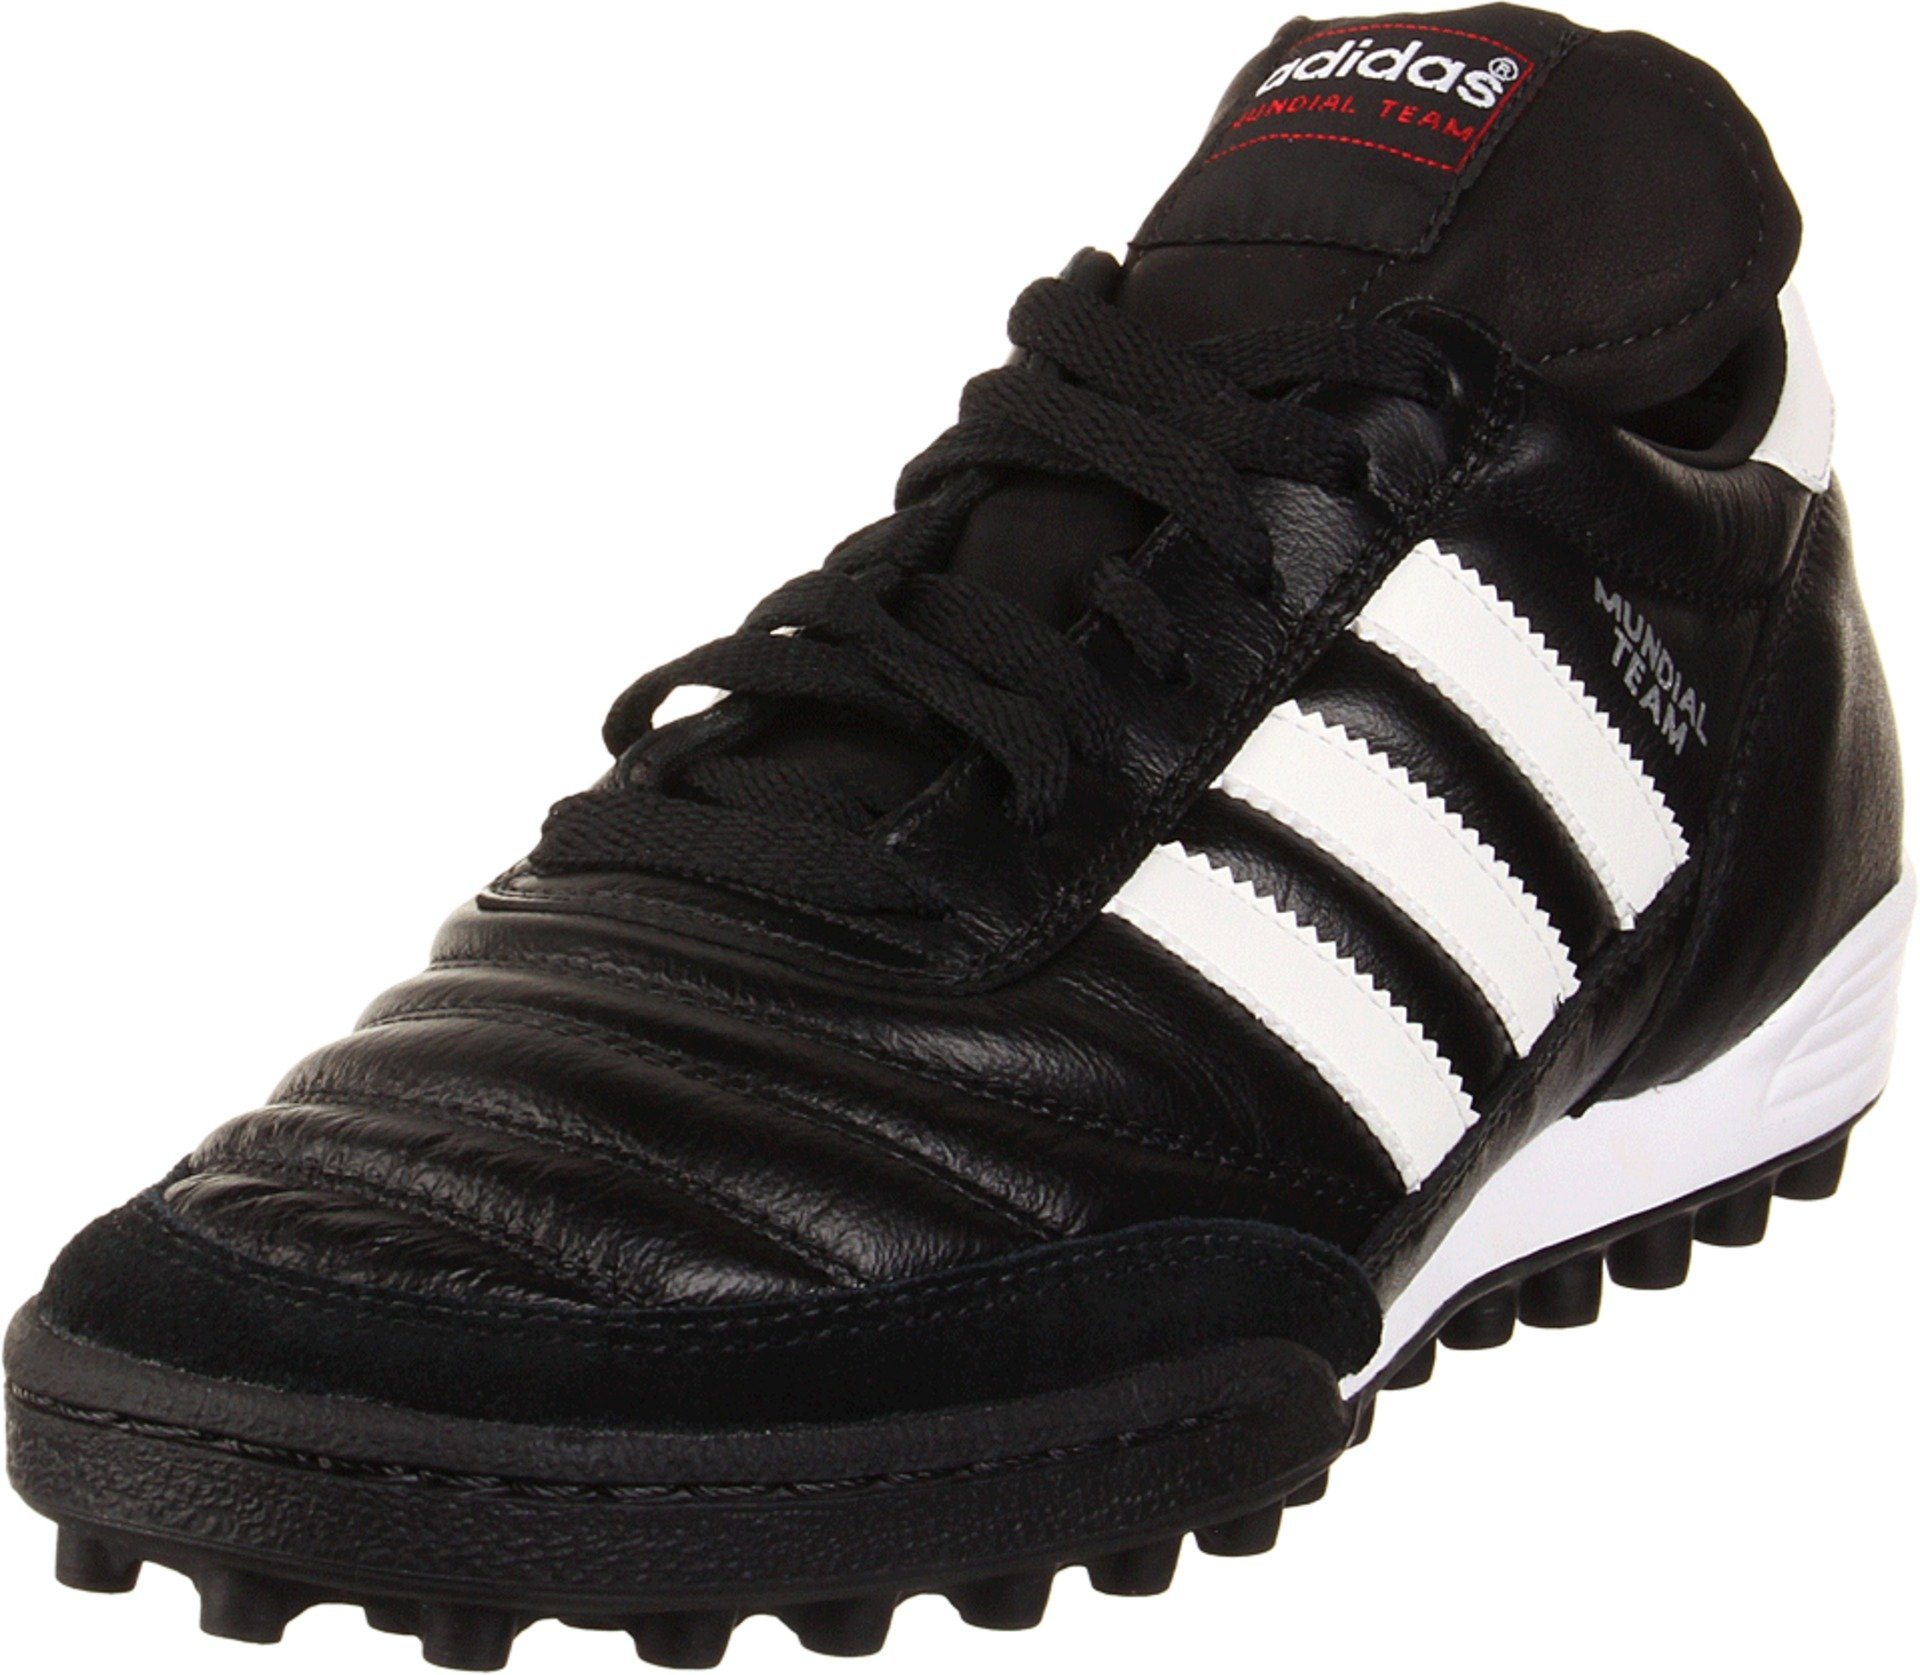 adidas Performance Men's MUNDIAL TEAM Athletic Shoe, black/white/red, 8.5 M US